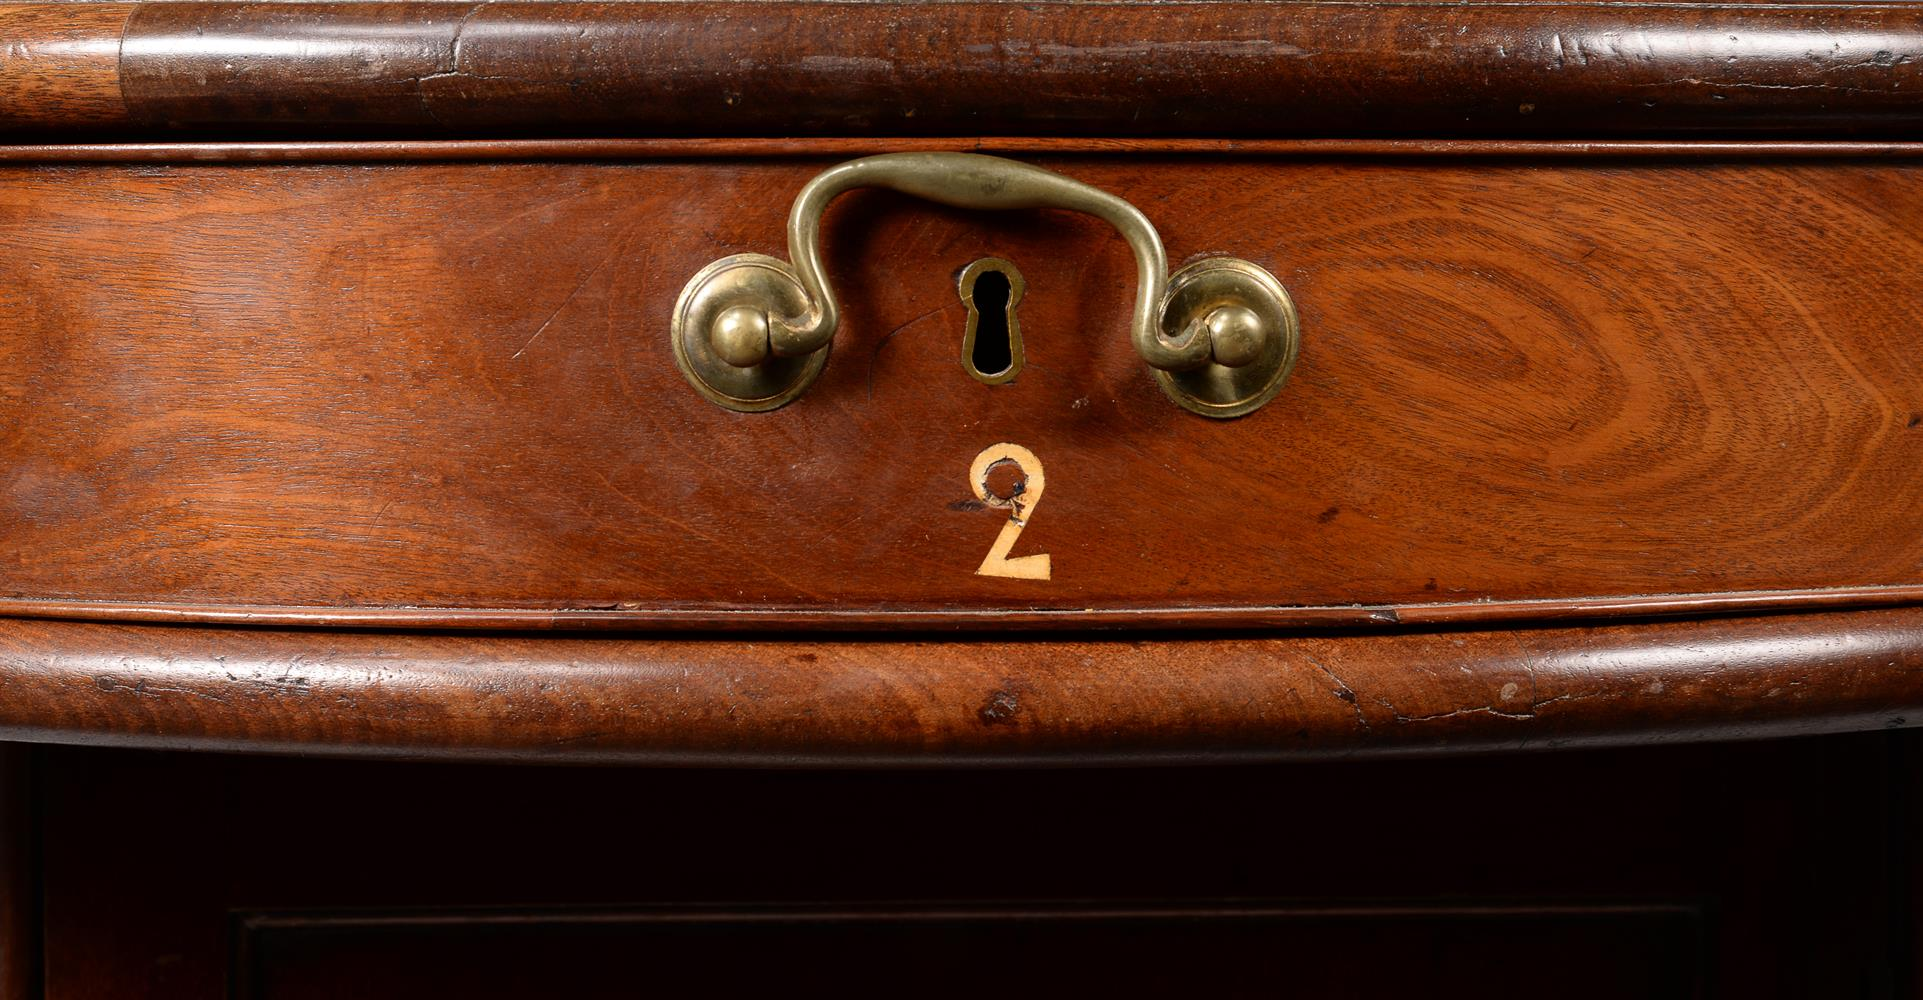 A GEORGE III MAHOGANY LIBRARY OR RENT TABLE, CIRCA 1780 - Image 2 of 7